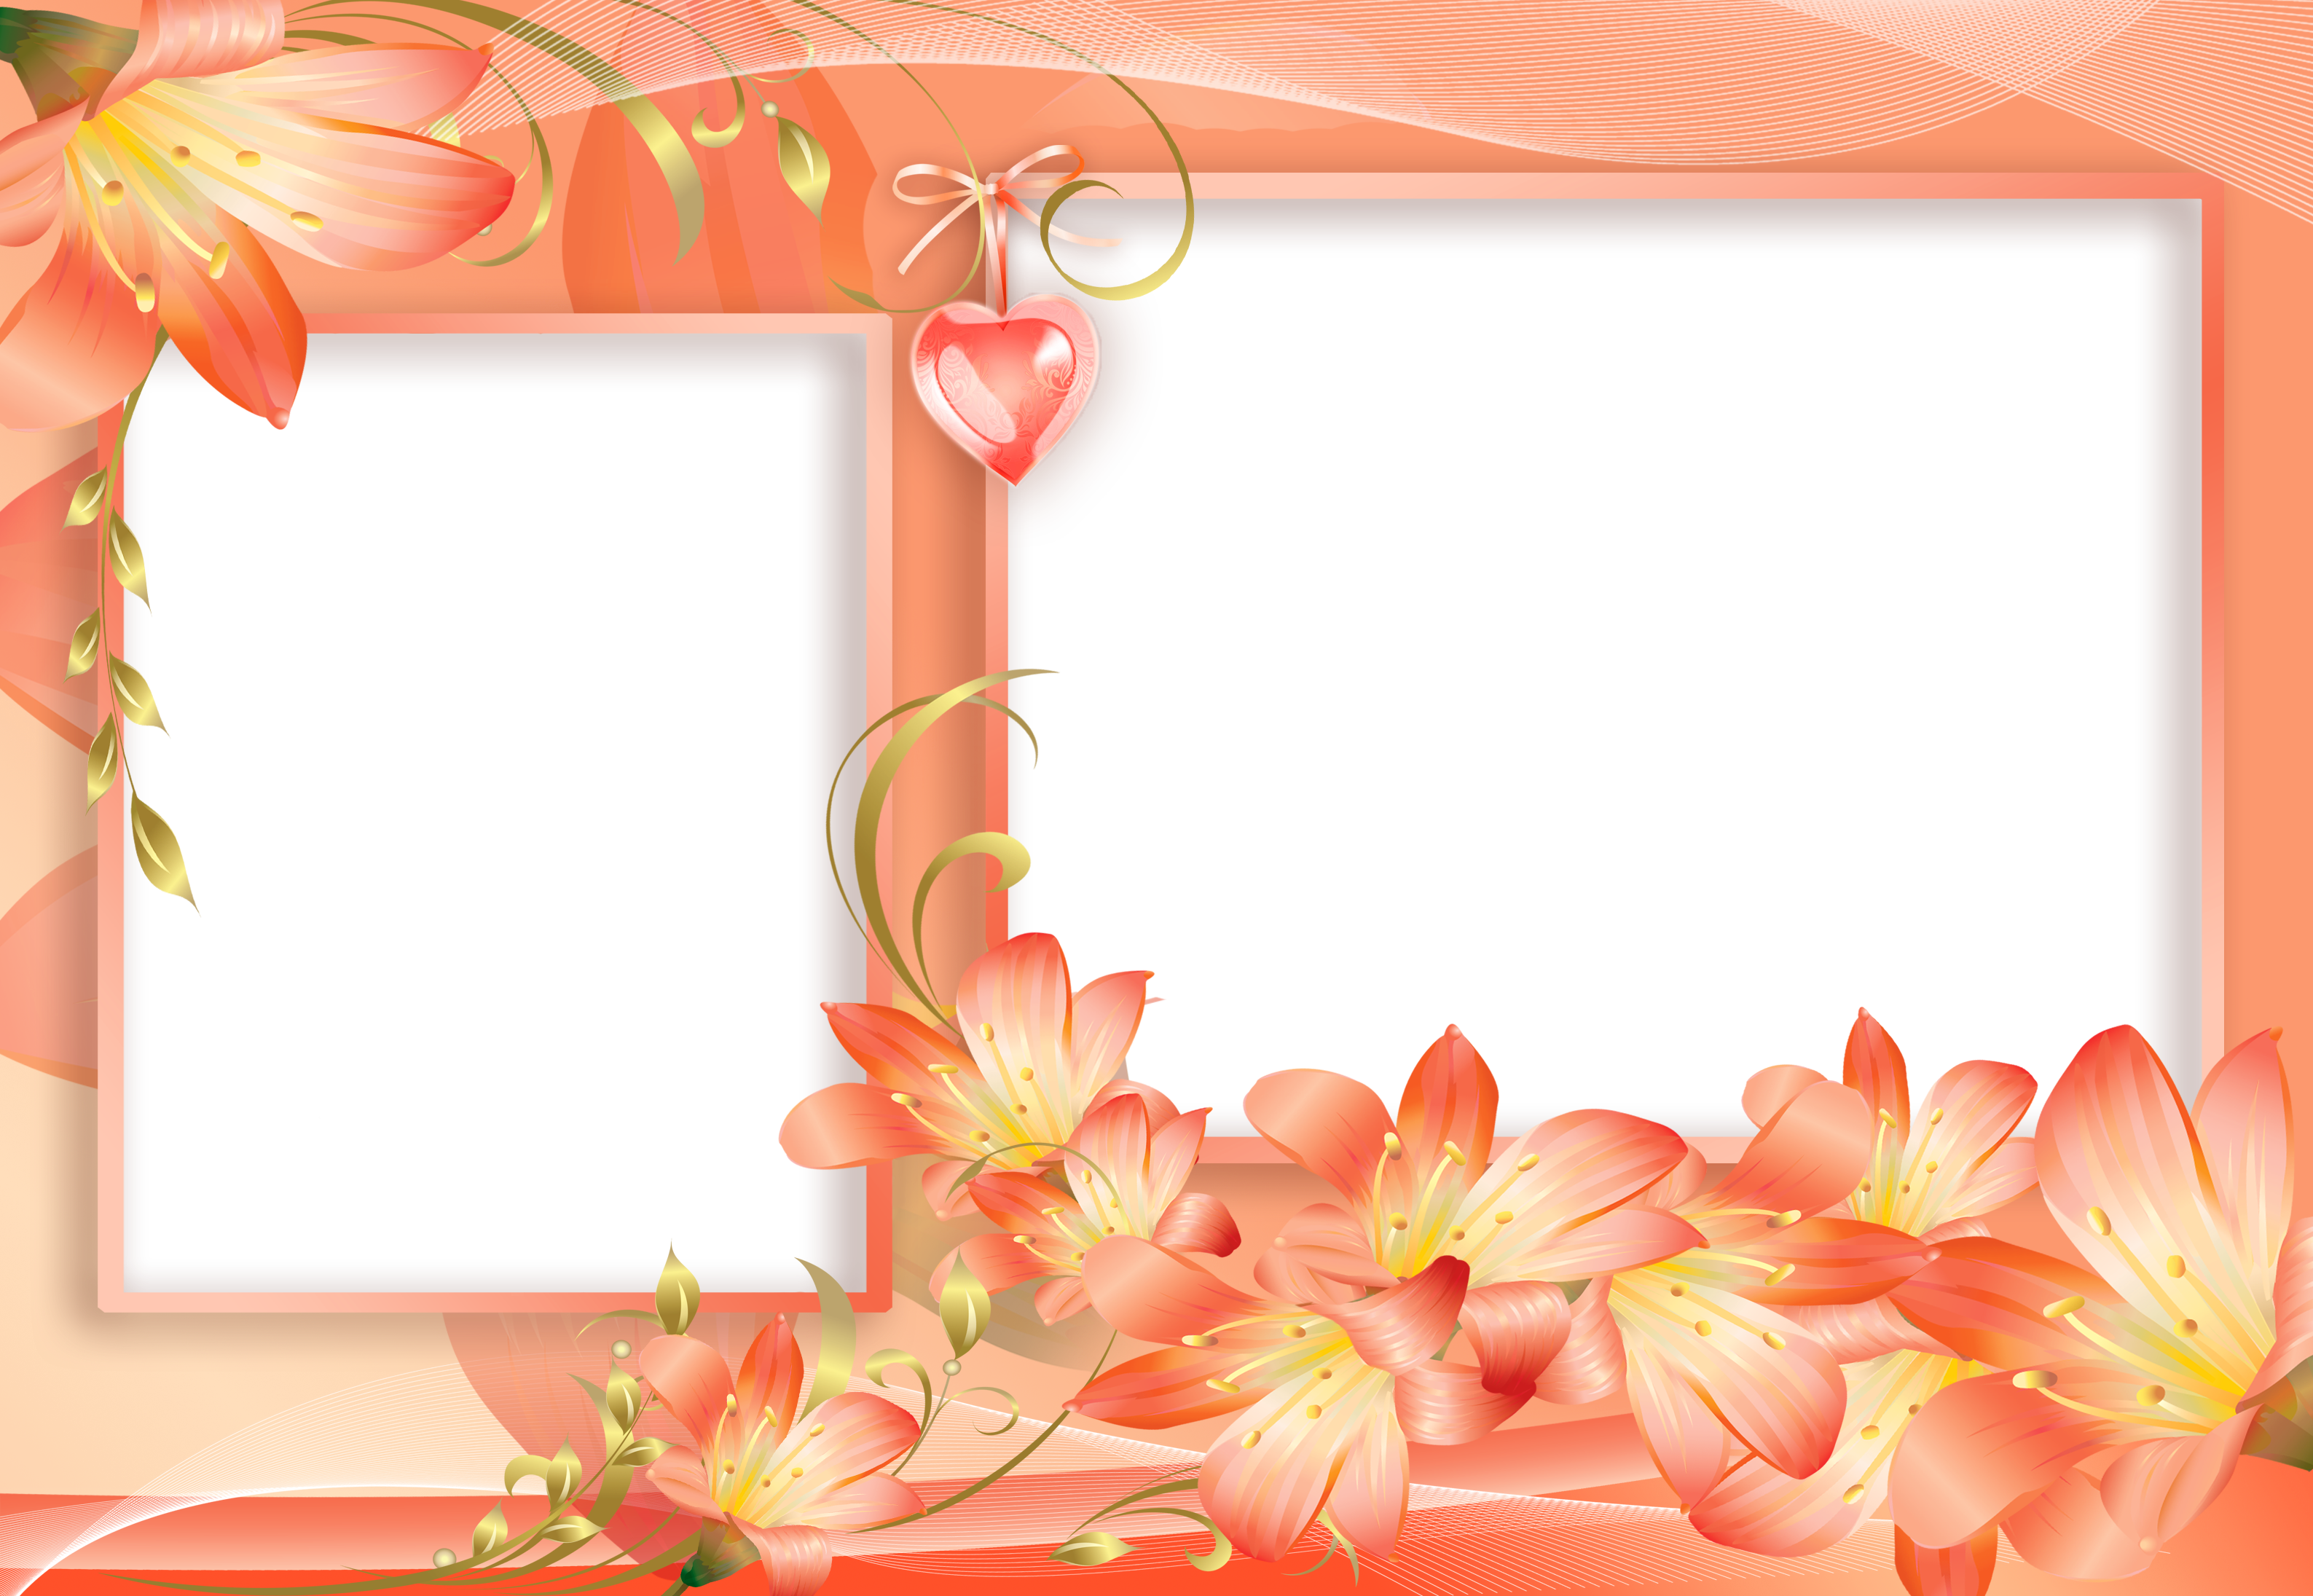 Orange and Yellow PNG Flowers Frame with Heart Etiquetas